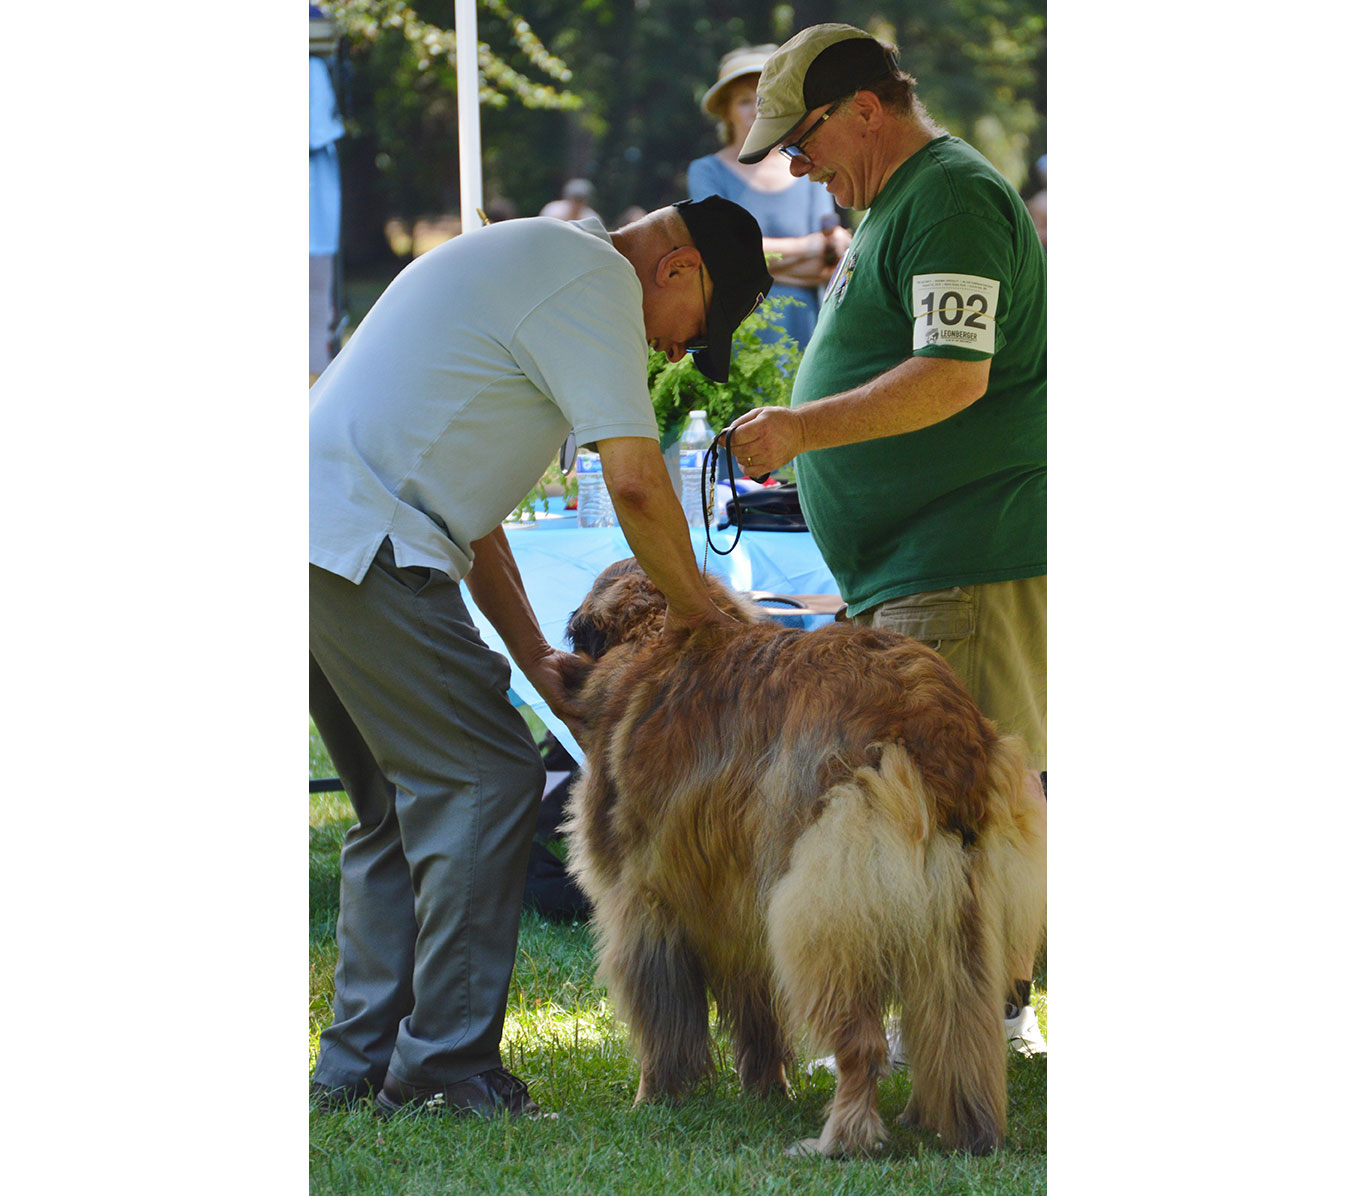 August 20, 2016 - The LCNW Summer Regional Specialty at Nolte State Park in Enumclaw, Washington. Photo courtesy of Christina Merten.